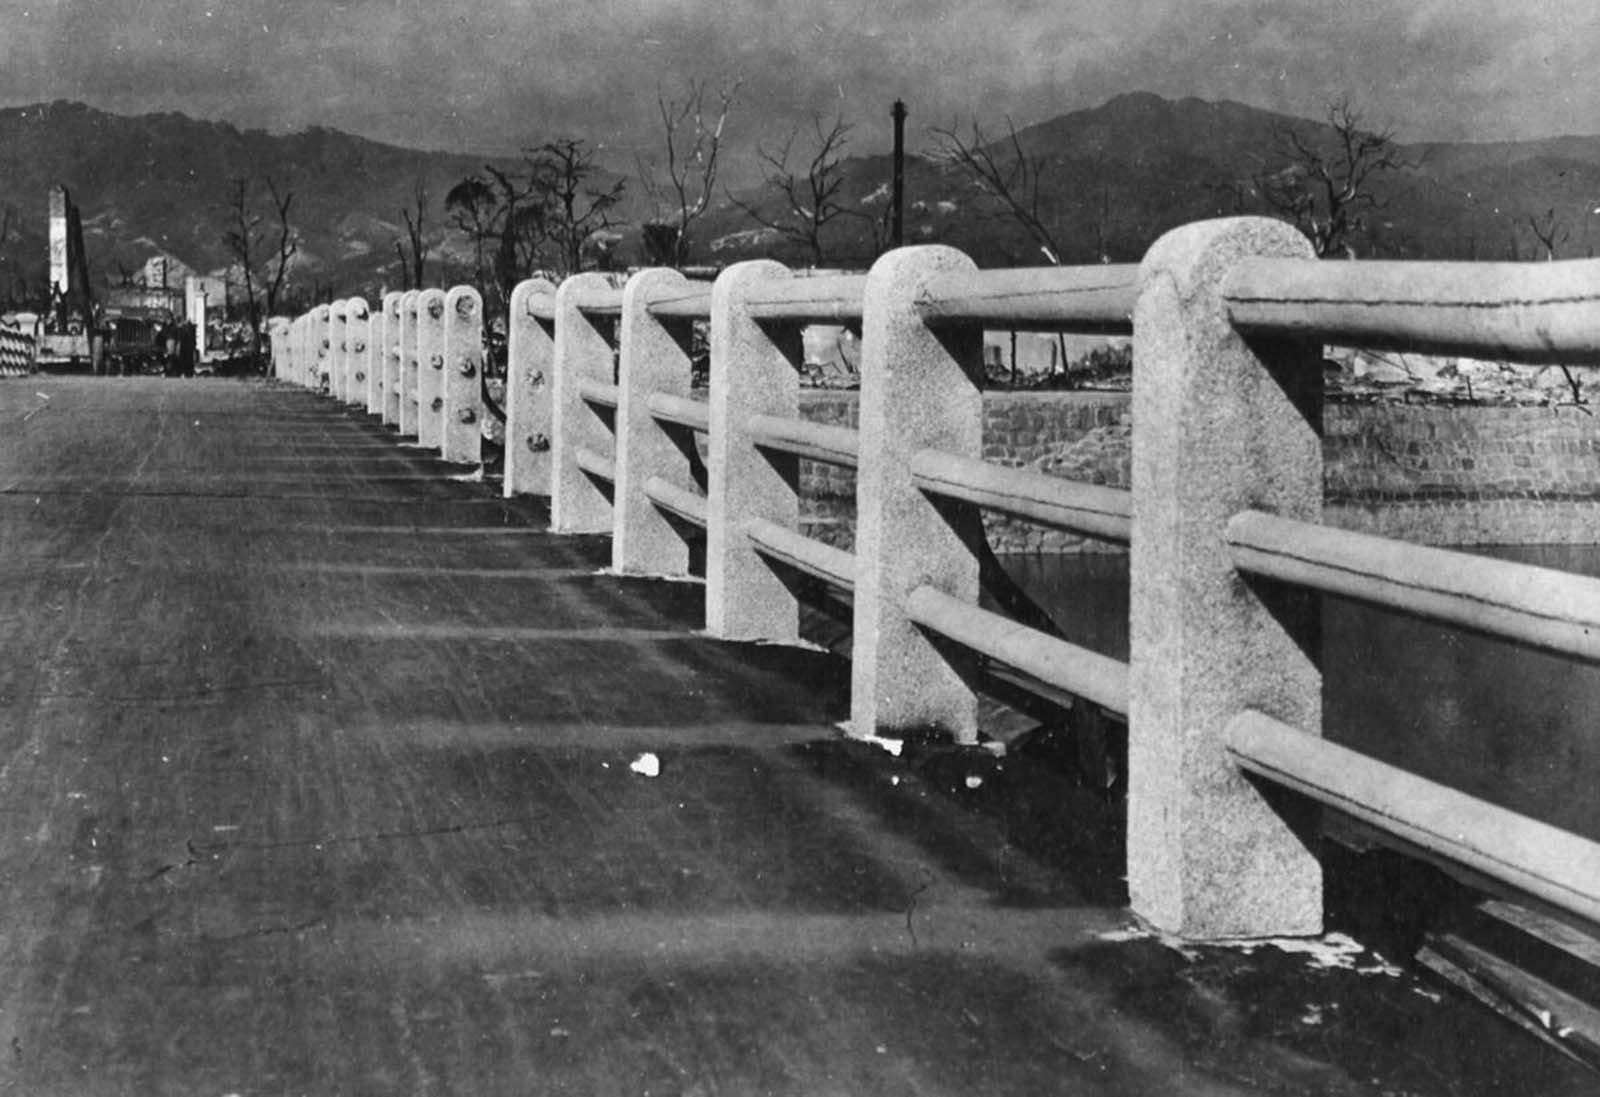 The searing heat from the nuclear explosion above Hiroshima scorched the roadway of this bridge across the Ota River, about a half a mile from the focal point of the bomb burst. The areas shielded by the concrete pillars and railings were left undamaged, creating permanent